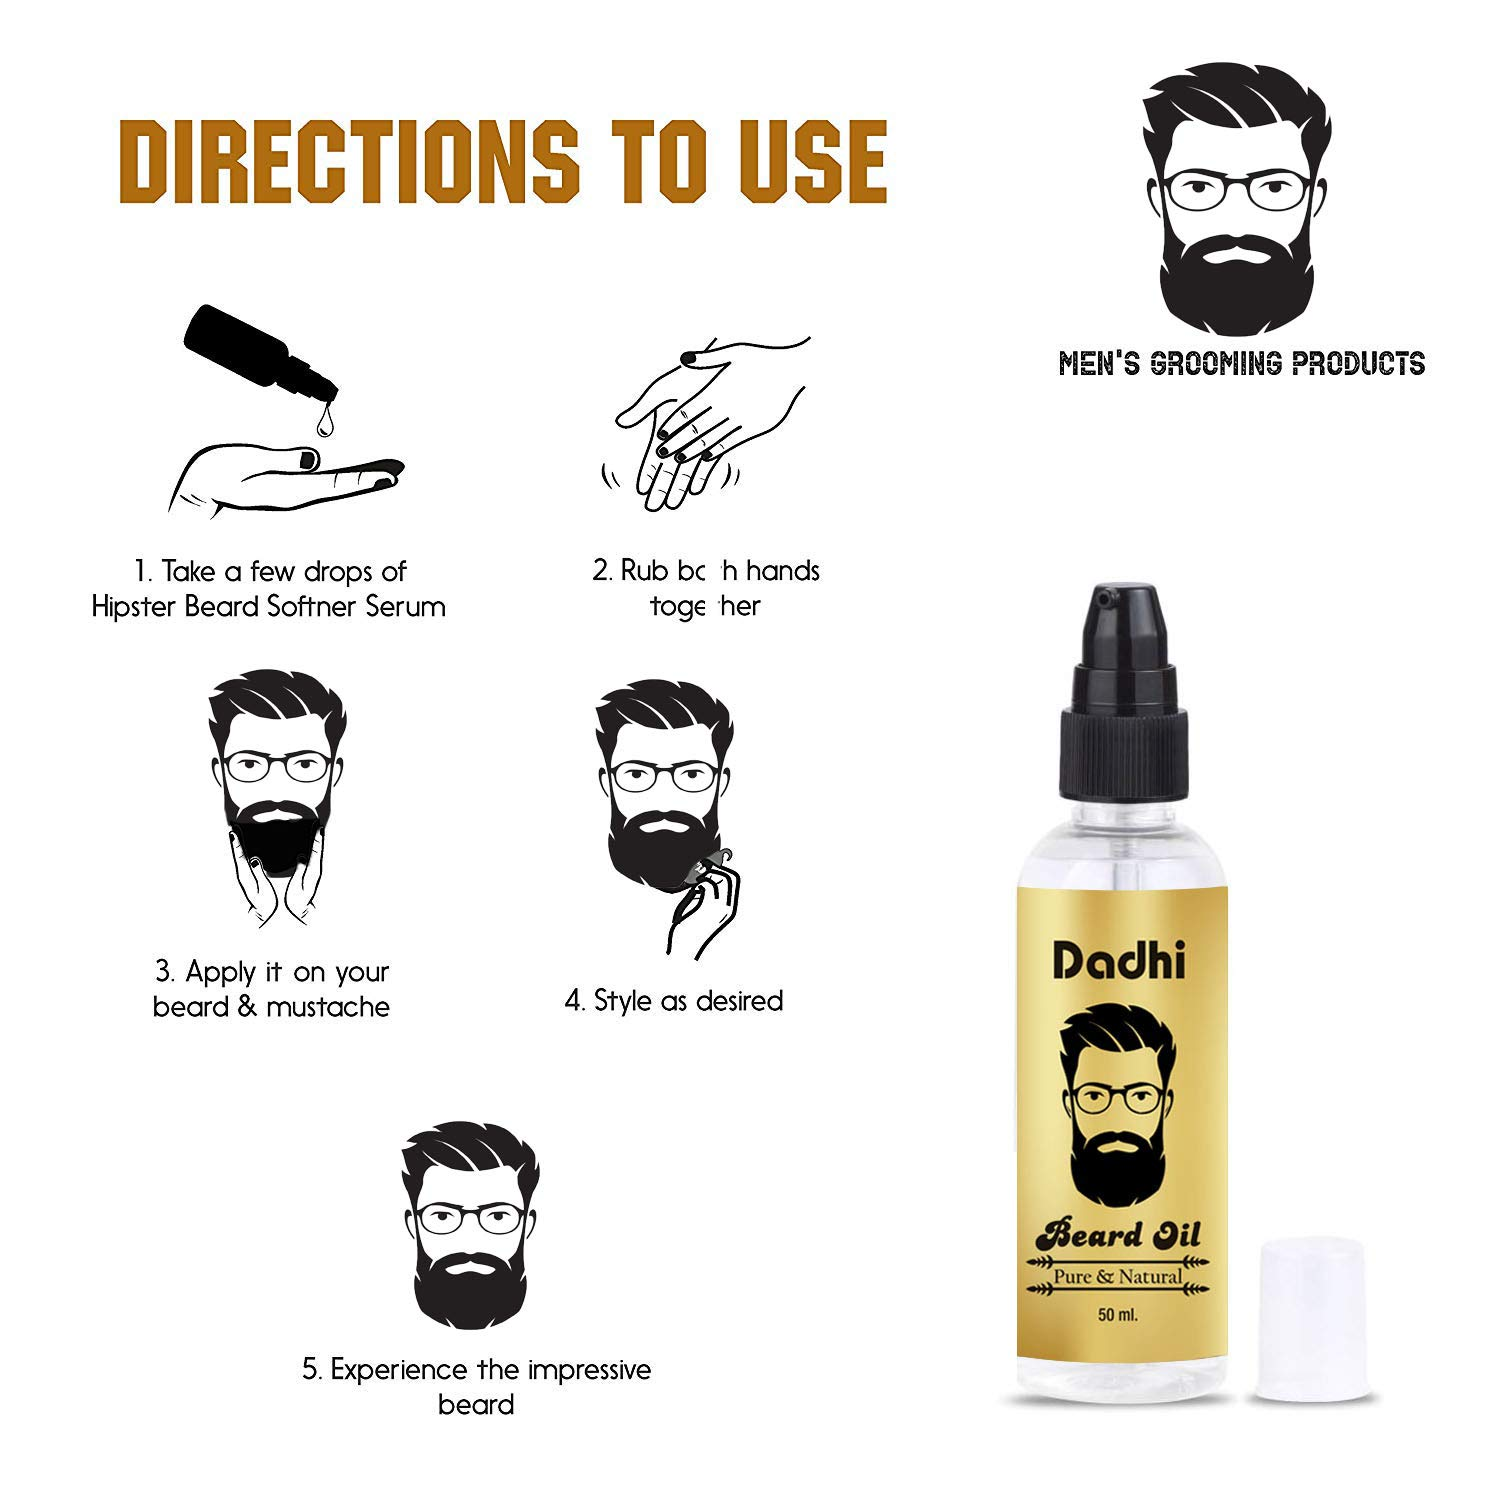 Buy Dadhi Beard and Hair Growth Oil - 50 ml Online at Low Prices in